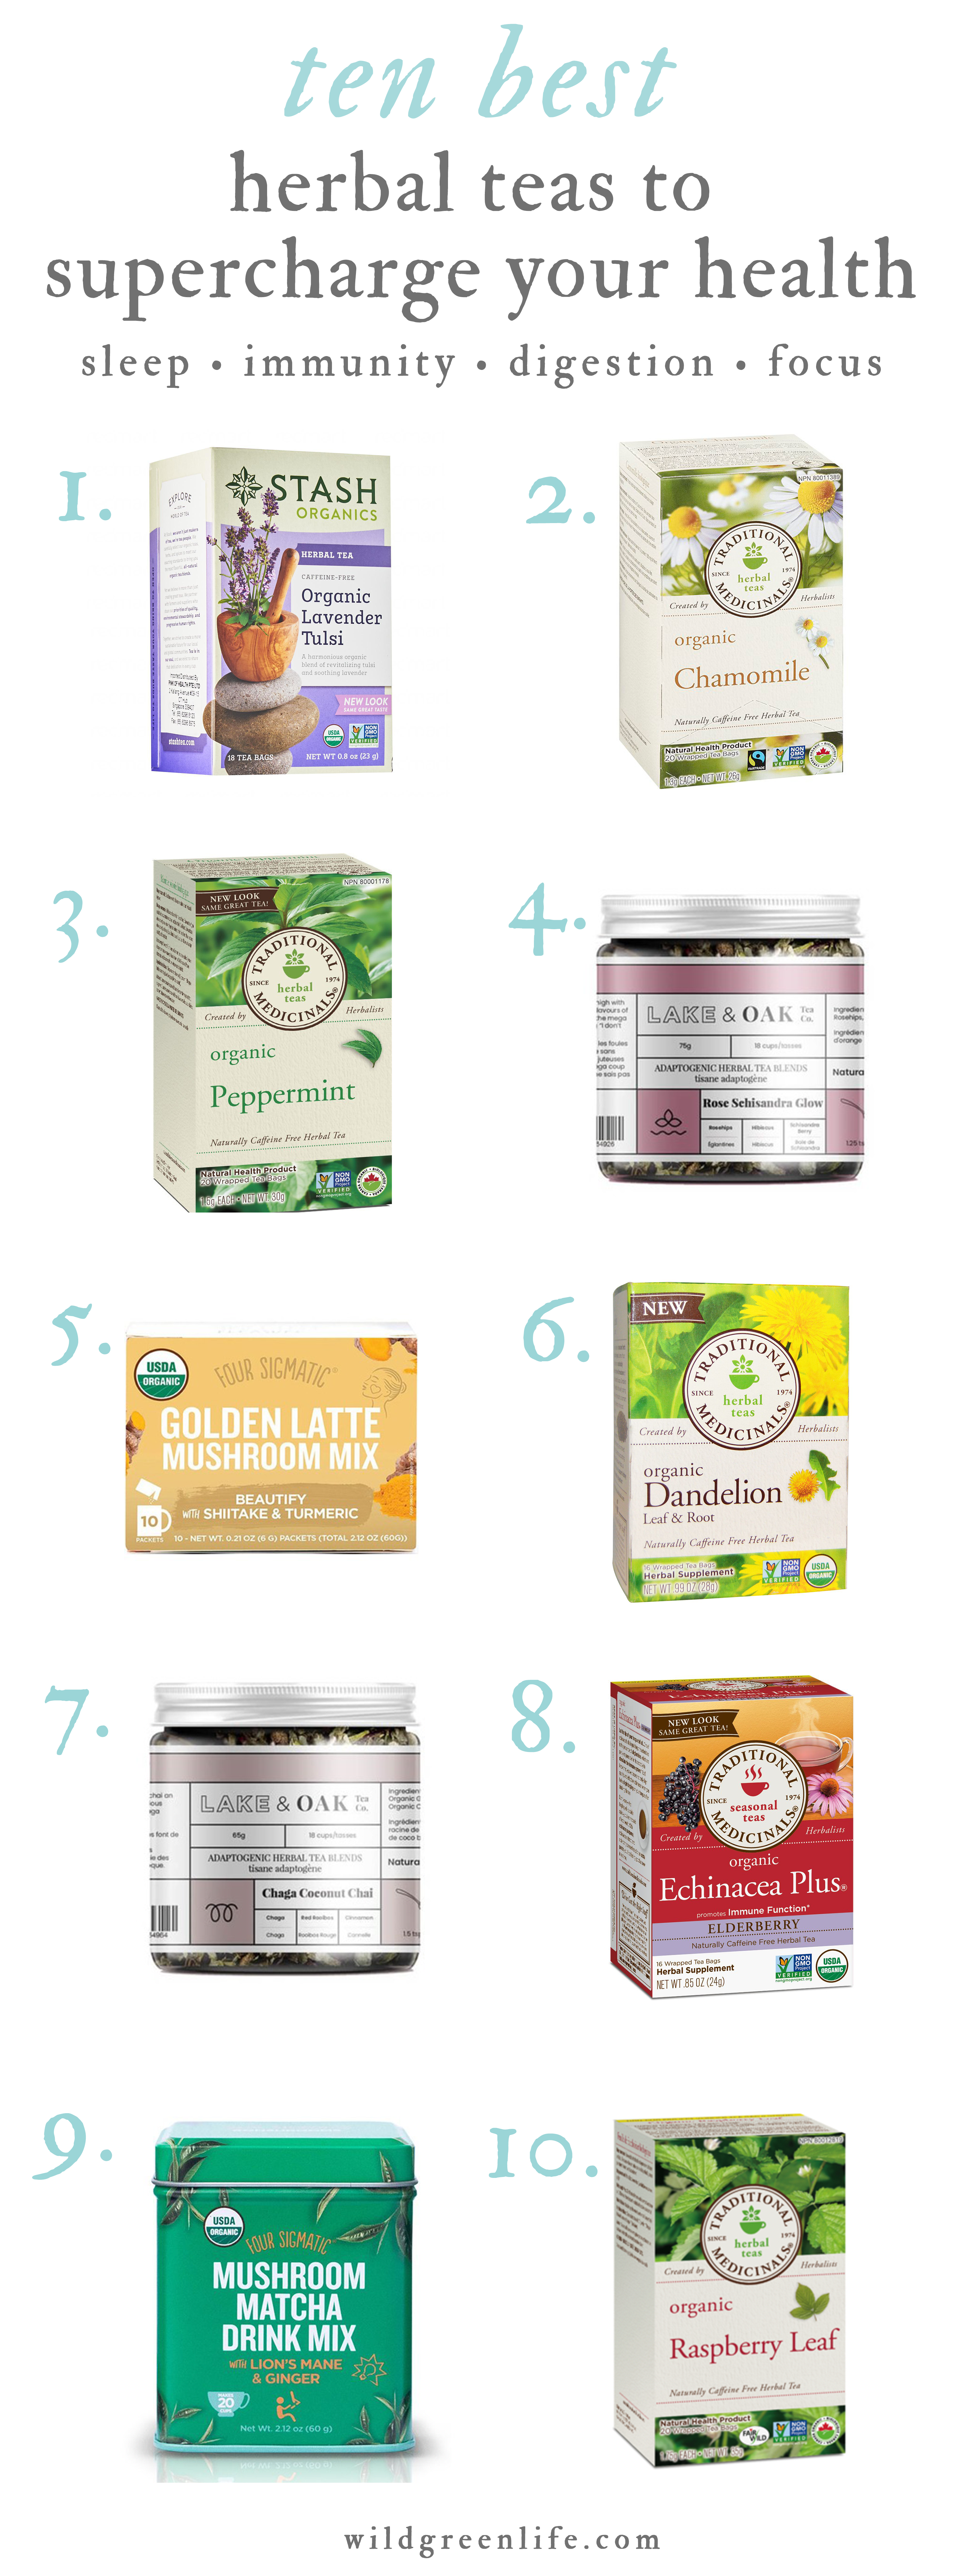 10 wellness teas to supercharge your immune system, digestive health, improve sleep & focus, manage PMS and help you stay warm during this fall & winter season!